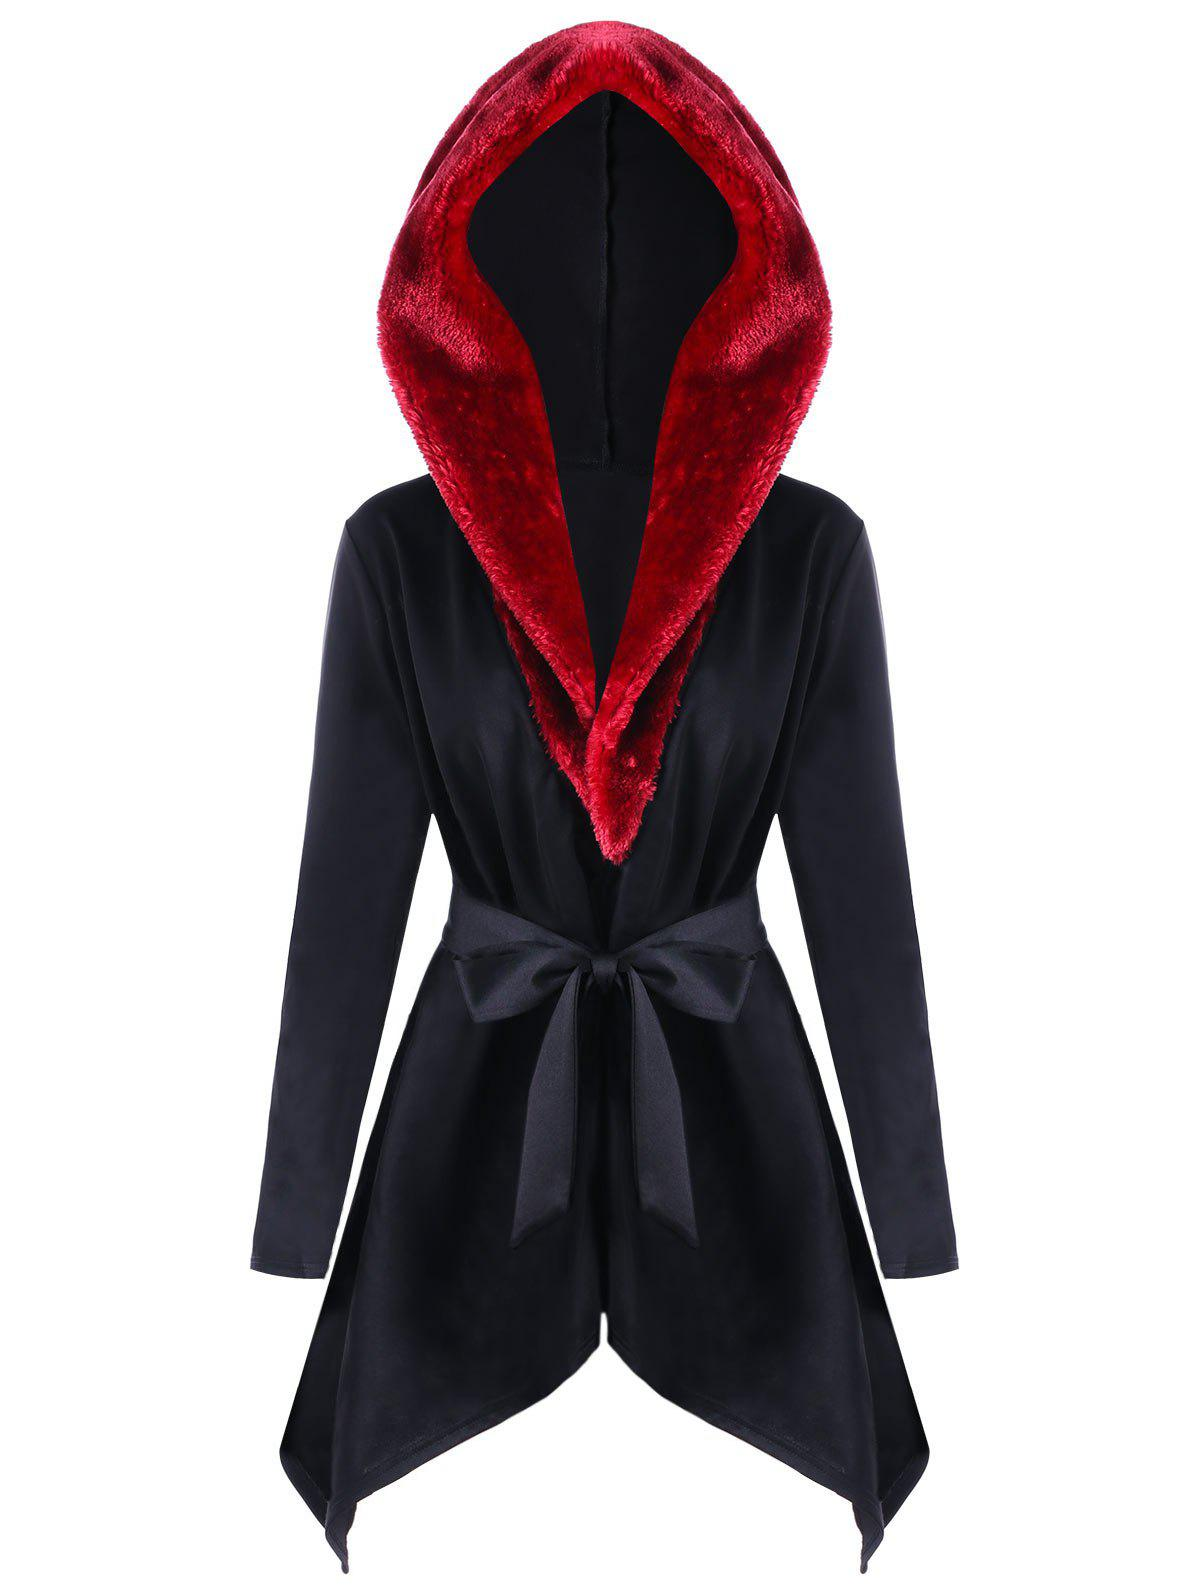 Faux Fur  Trimmed Asymmetric Hooded CoatWOMEN<br><br>Size: XL; Color: BLACK; Clothes Type: Others; Material: Polyester,Spandex; Type: Asymmetric Length; Shirt Length: Long; Sleeve Length: Full; Collar: Hooded; Pattern Type: Others; Style: Fashion; Season: Fall,Spring; With Belt: Yes; Weight: 0.5520kg; Package Contents: 1 x Coat 1 x Belt;